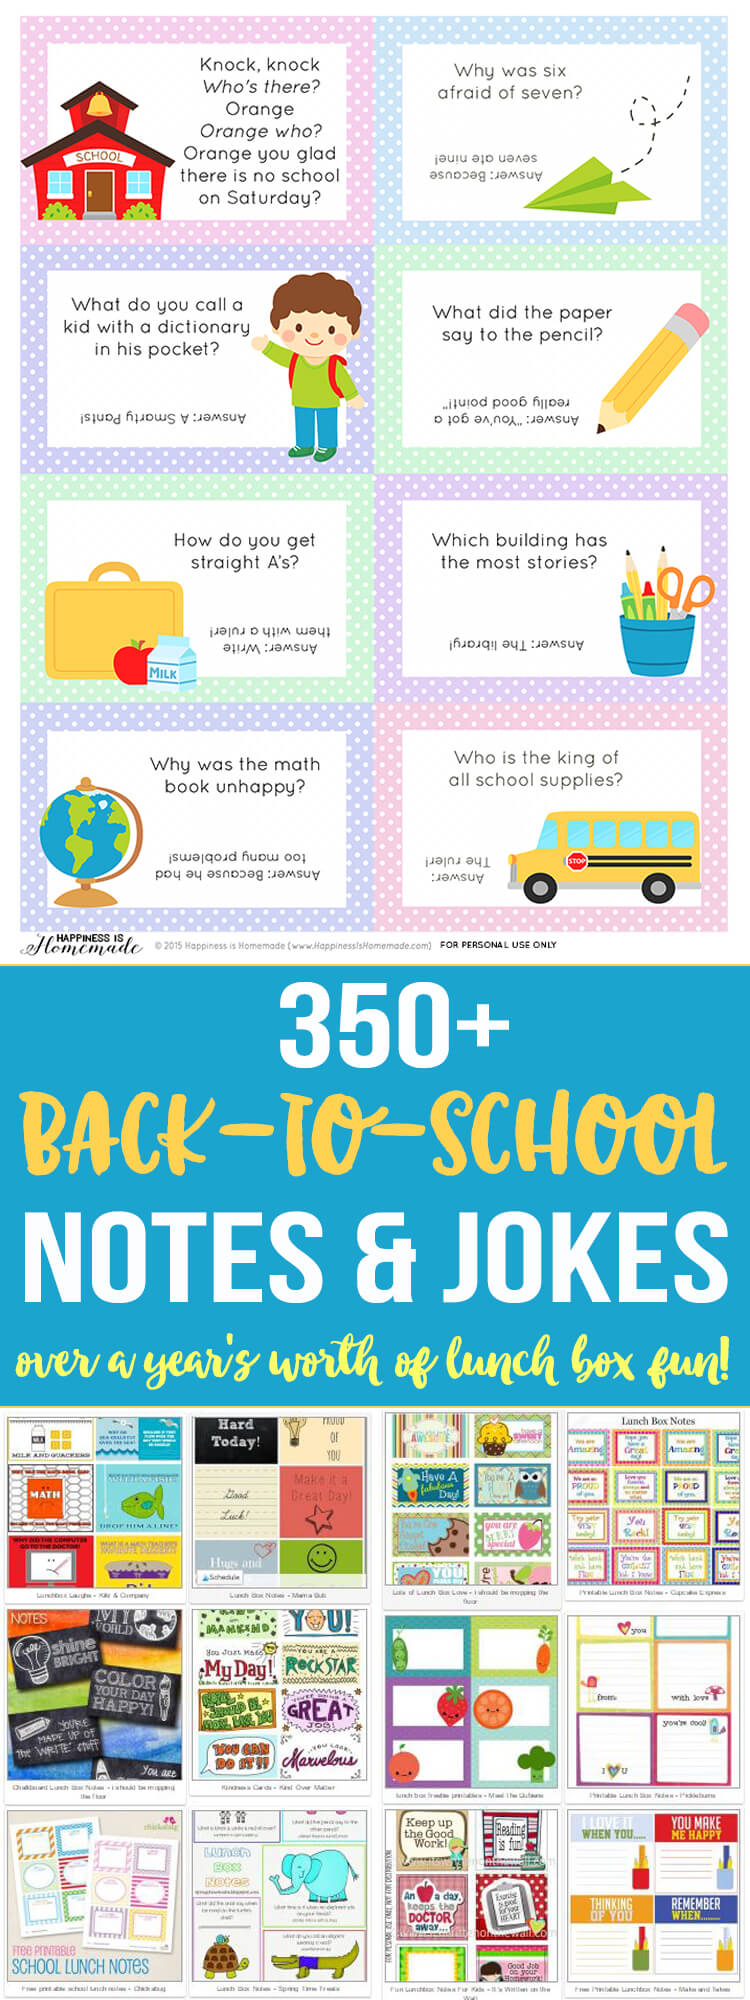 Over 350 Printable Back to School Lunch Box Notes and Jokes